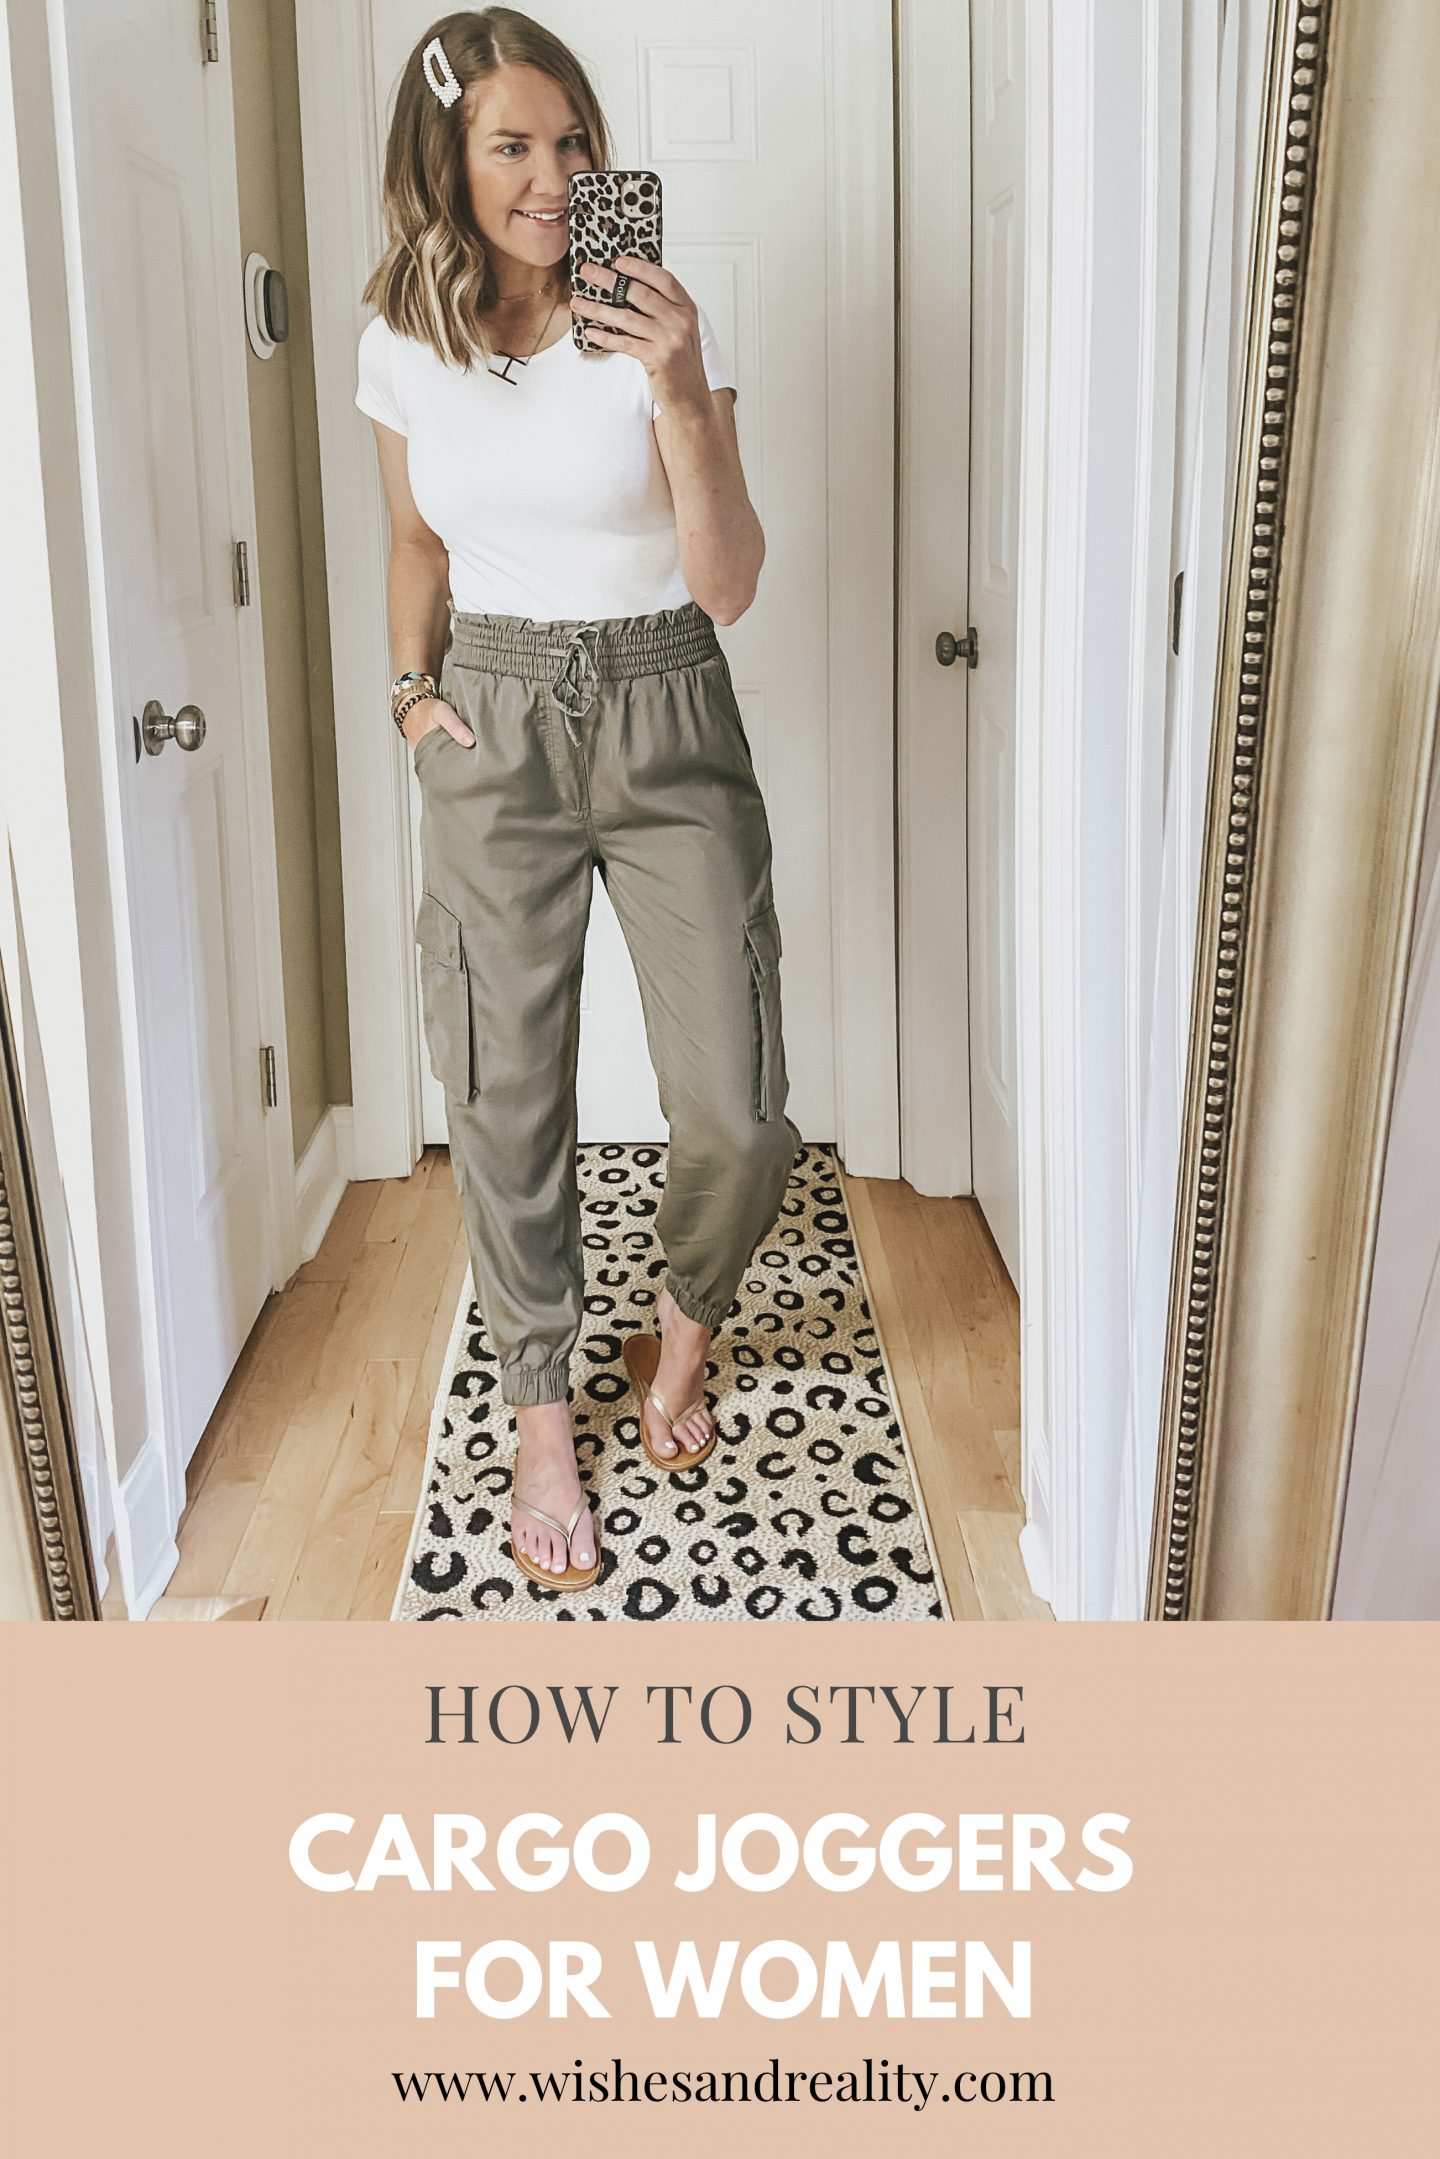 How to Style Cargo Joggers for Women